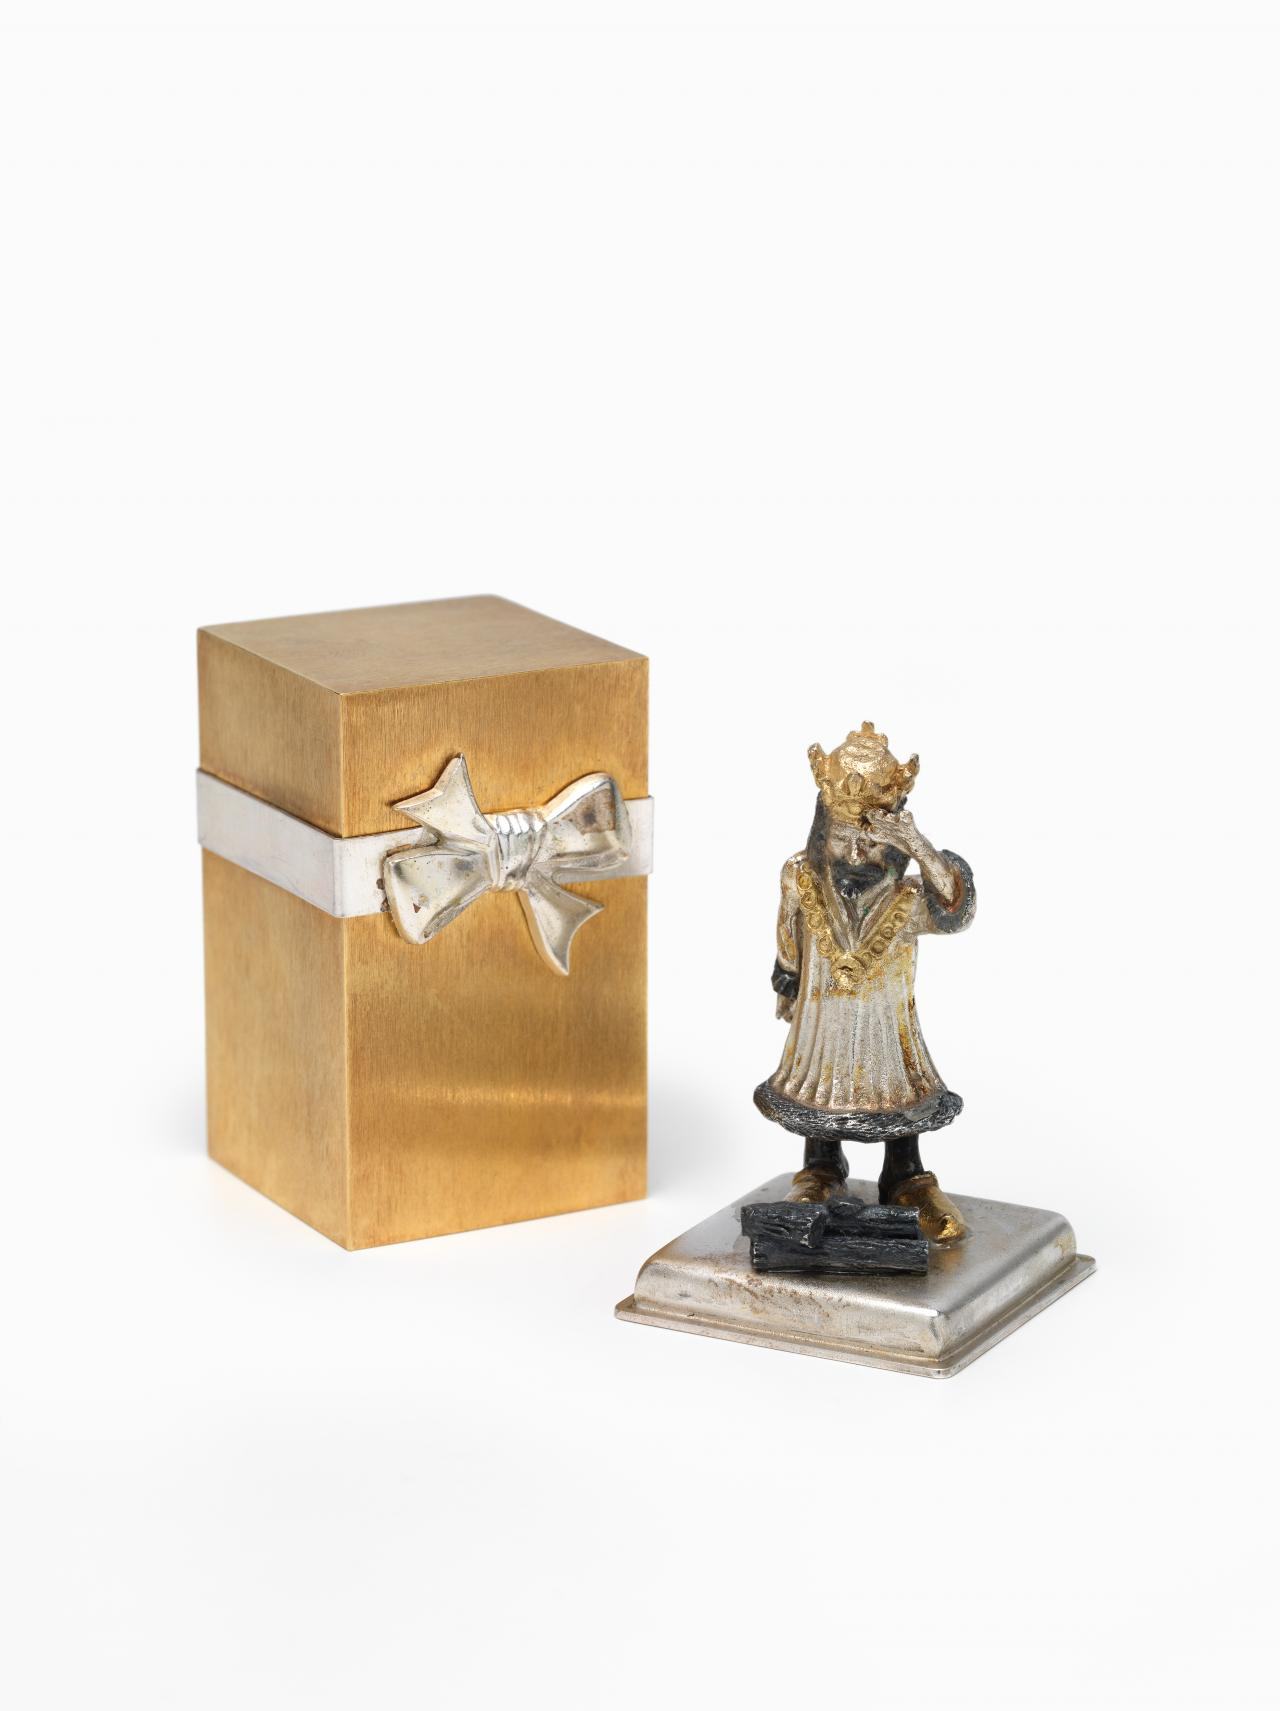 Ten Surprise boxes: Christmas carols: Good King Wenceslas